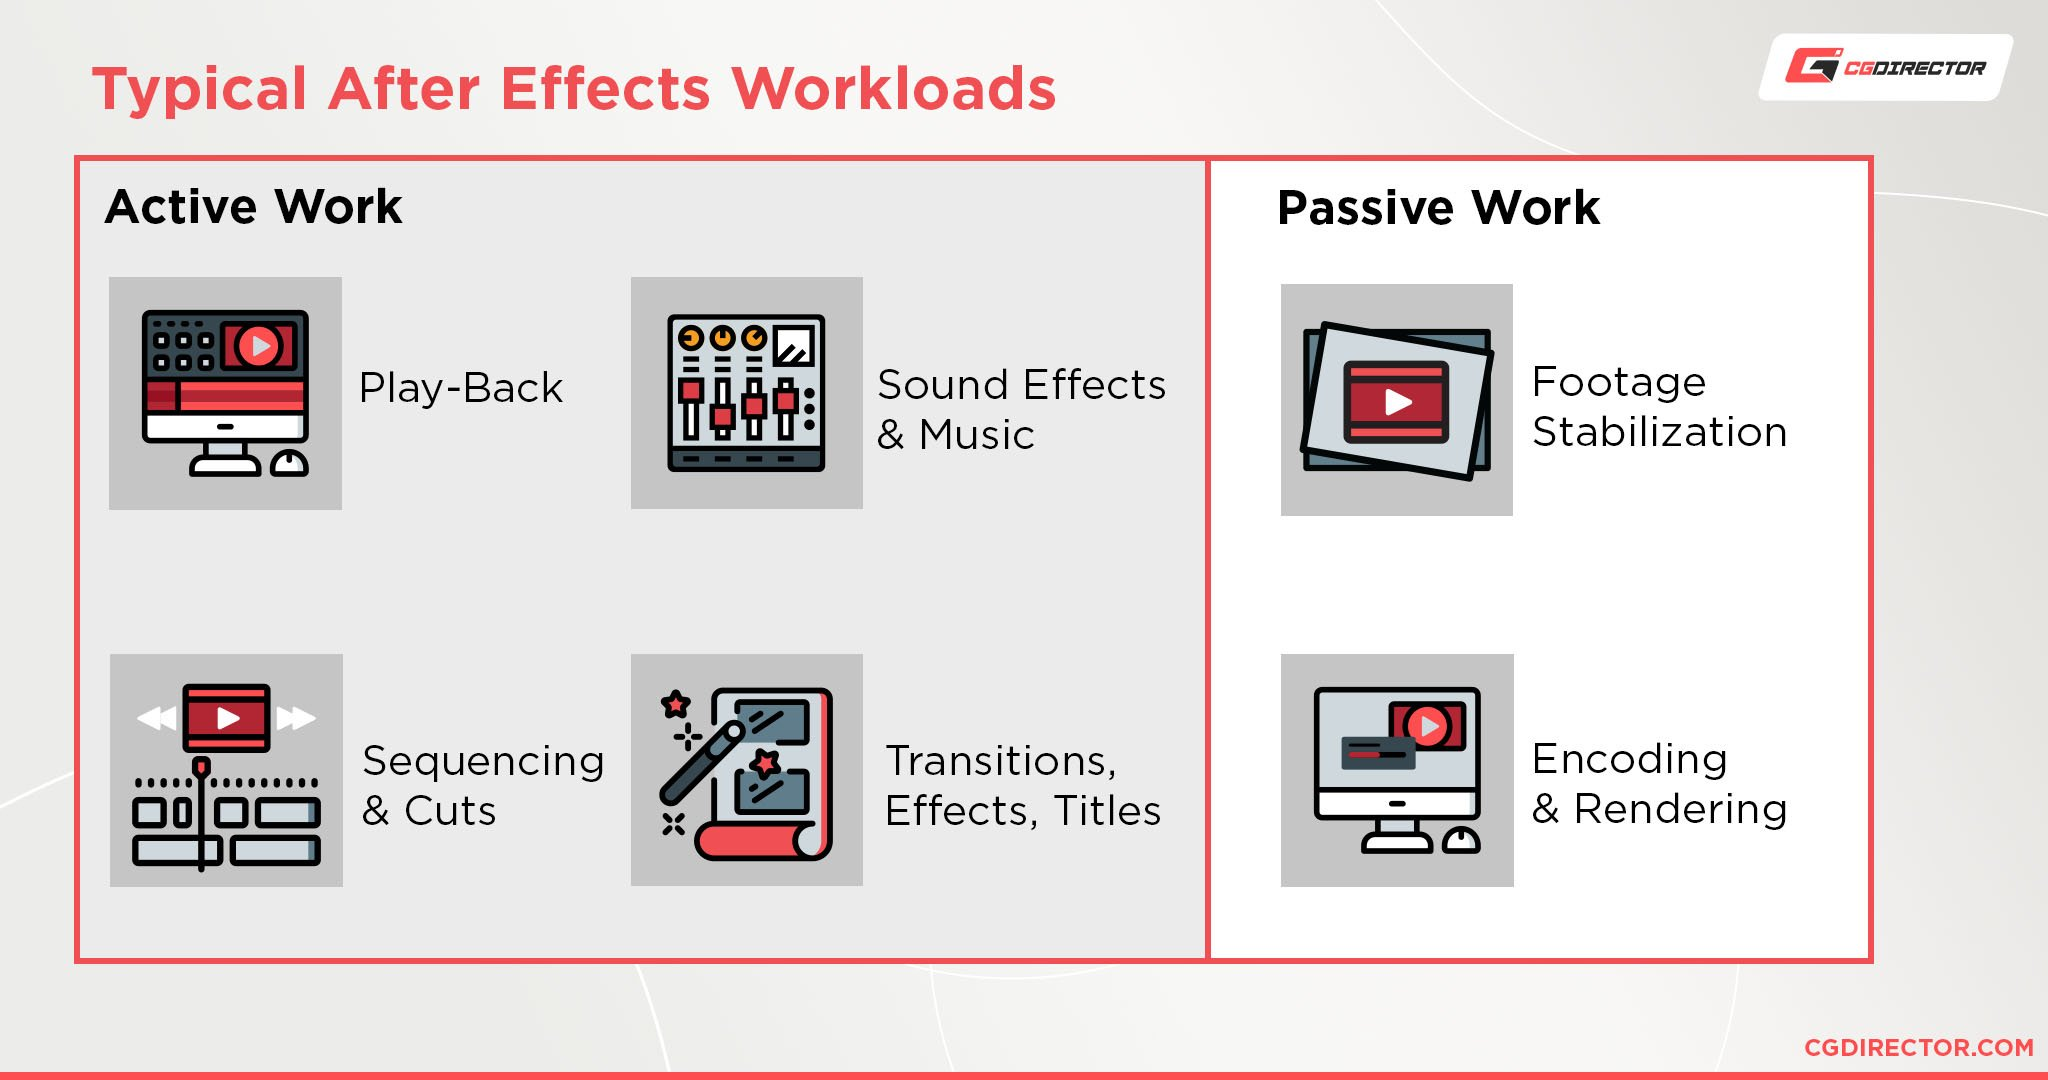 Typical After Effects Workloads